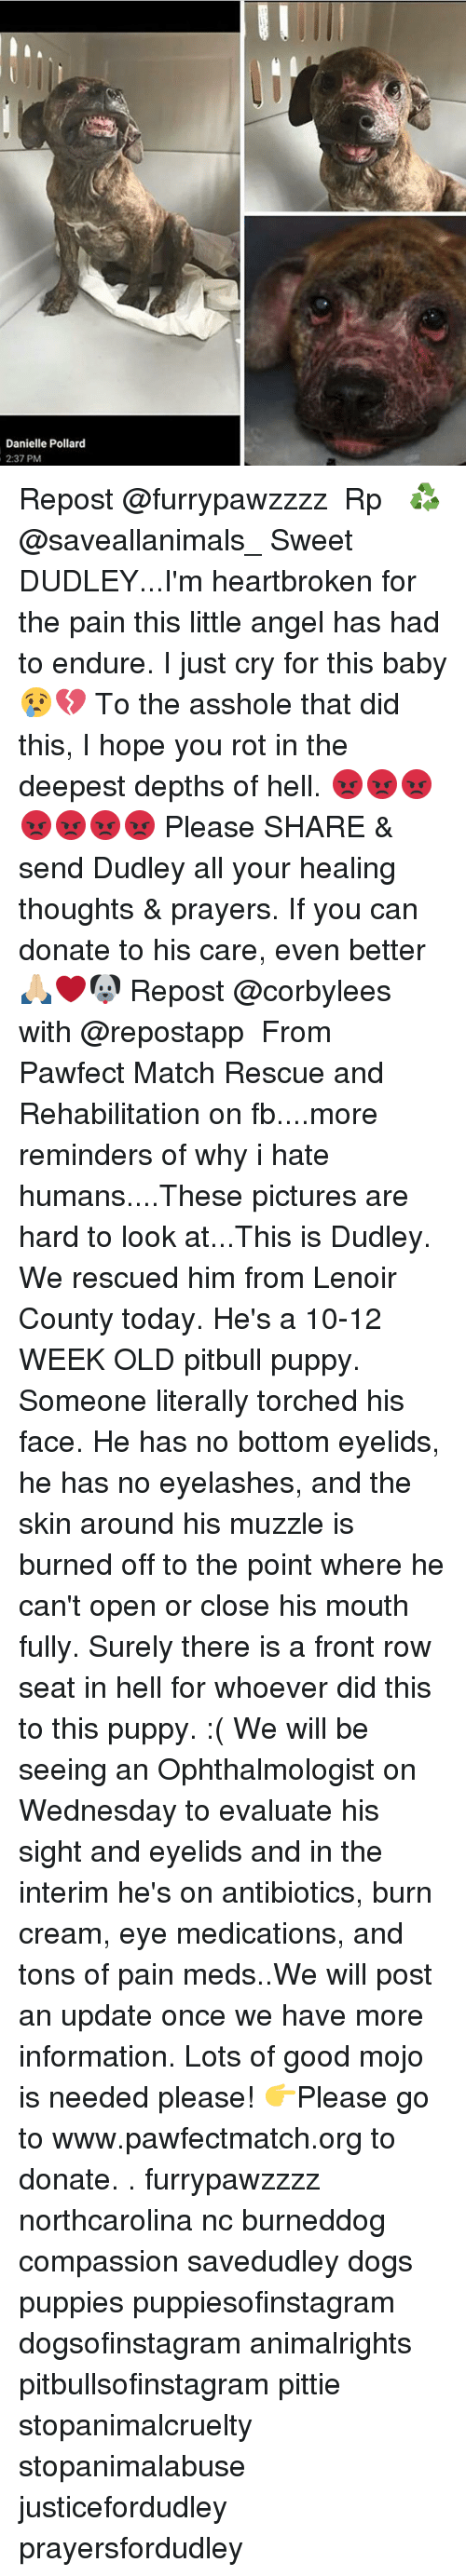 Memes, Pitbull, and Front Row: Danielle Pollard  2:37 PM Repost @furrypawzzzz ・・・ Rp♻️ @saveallanimals_ Sweet DUDLEY...I'm heartbroken for the pain this little angel has had to endure. I just cry for this baby 😢💔 To the asshole that did this, I hope you rot in the deepest depths of hell. 😡😡😡😡😡😡😡 Please SHARE & send Dudley all your healing thoughts & prayers. If you can donate to his care, even better 🙏🏼❤🐶 Repost @corbylees with @repostapp ・・・ From Pawfect Match Rescue and Rehabilitation on fb....more reminders of why i hate humans....These pictures are hard to look at...This is Dudley. We rescued him from Lenoir County today. He's a 10-12 WEEK OLD pitbull puppy. Someone literally torched his face. He has no bottom eyelids, he has no eyelashes, and the skin around his muzzle is burned off to the point where he can't open or close his mouth fully. Surely there is a front row seat in hell for whoever did this to this puppy. :( We will be seeing an Ophthalmologist on Wednesday to evaluate his sight and eyelids and in the interim he's on antibiotics, burn cream, eye medications, and tons of pain meds..We will post an update once we have more information. Lots of good mojo is needed please! 👉Please go to www.pawfectmatch.org to donate. . furrypawzzzz northcarolina nc burneddog compassion savedudley dogs puppies puppiesofinstagram dogsofinstagram animalrights pitbullsofinstagram pittie stopanimalcruelty stopanimalabuse justicefordudley prayersfordudley